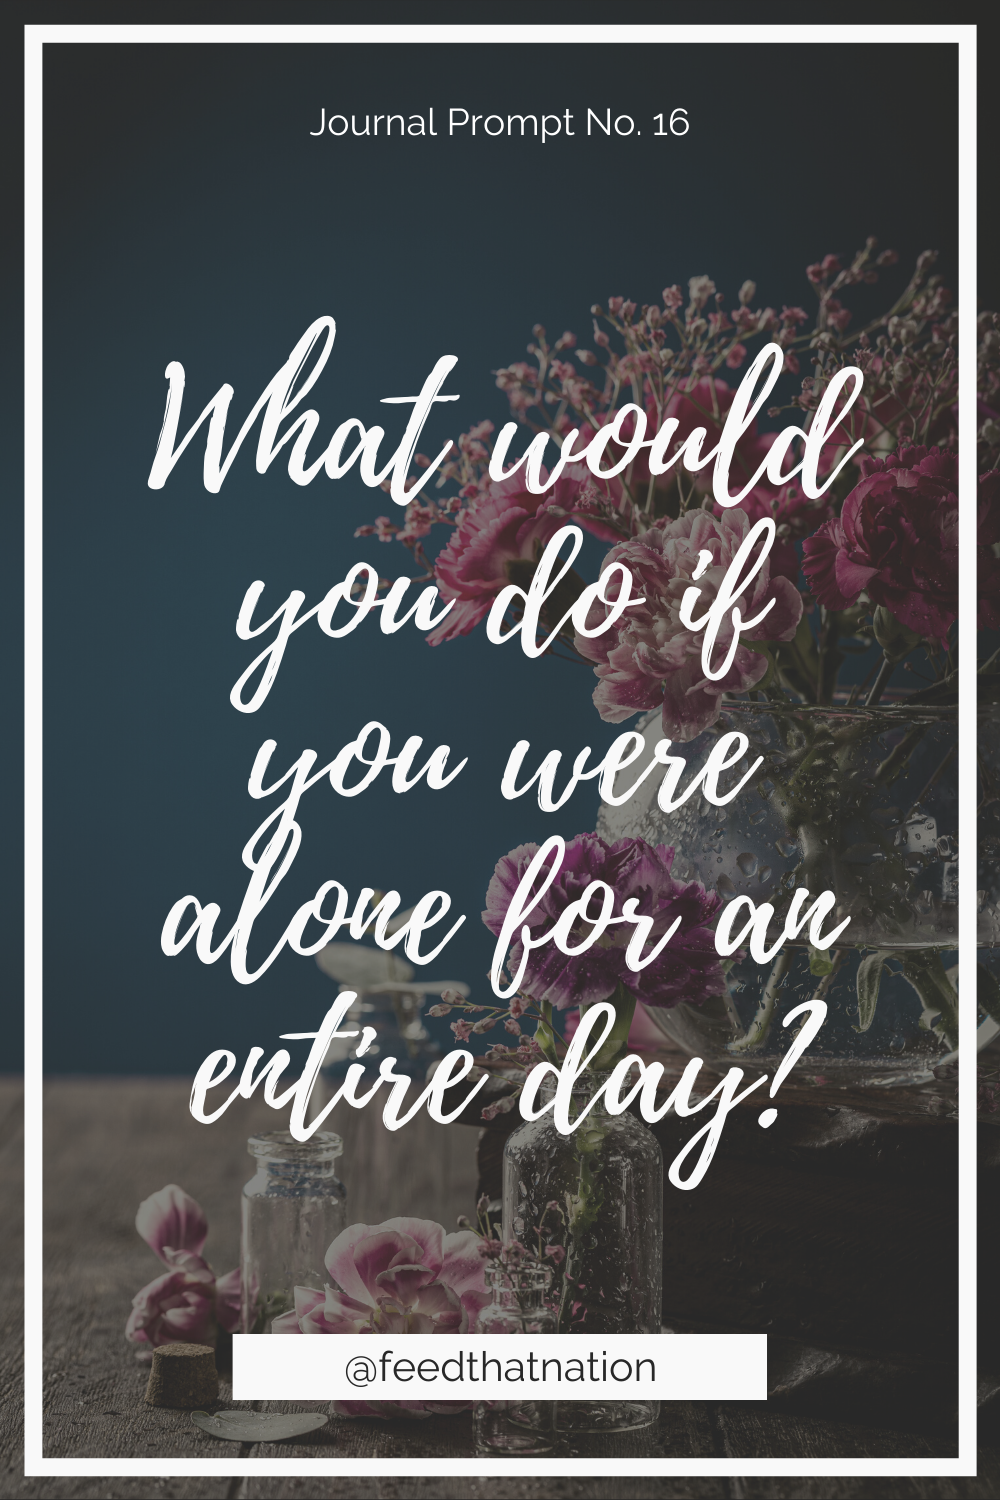 What would you do if you were alone for an entire day